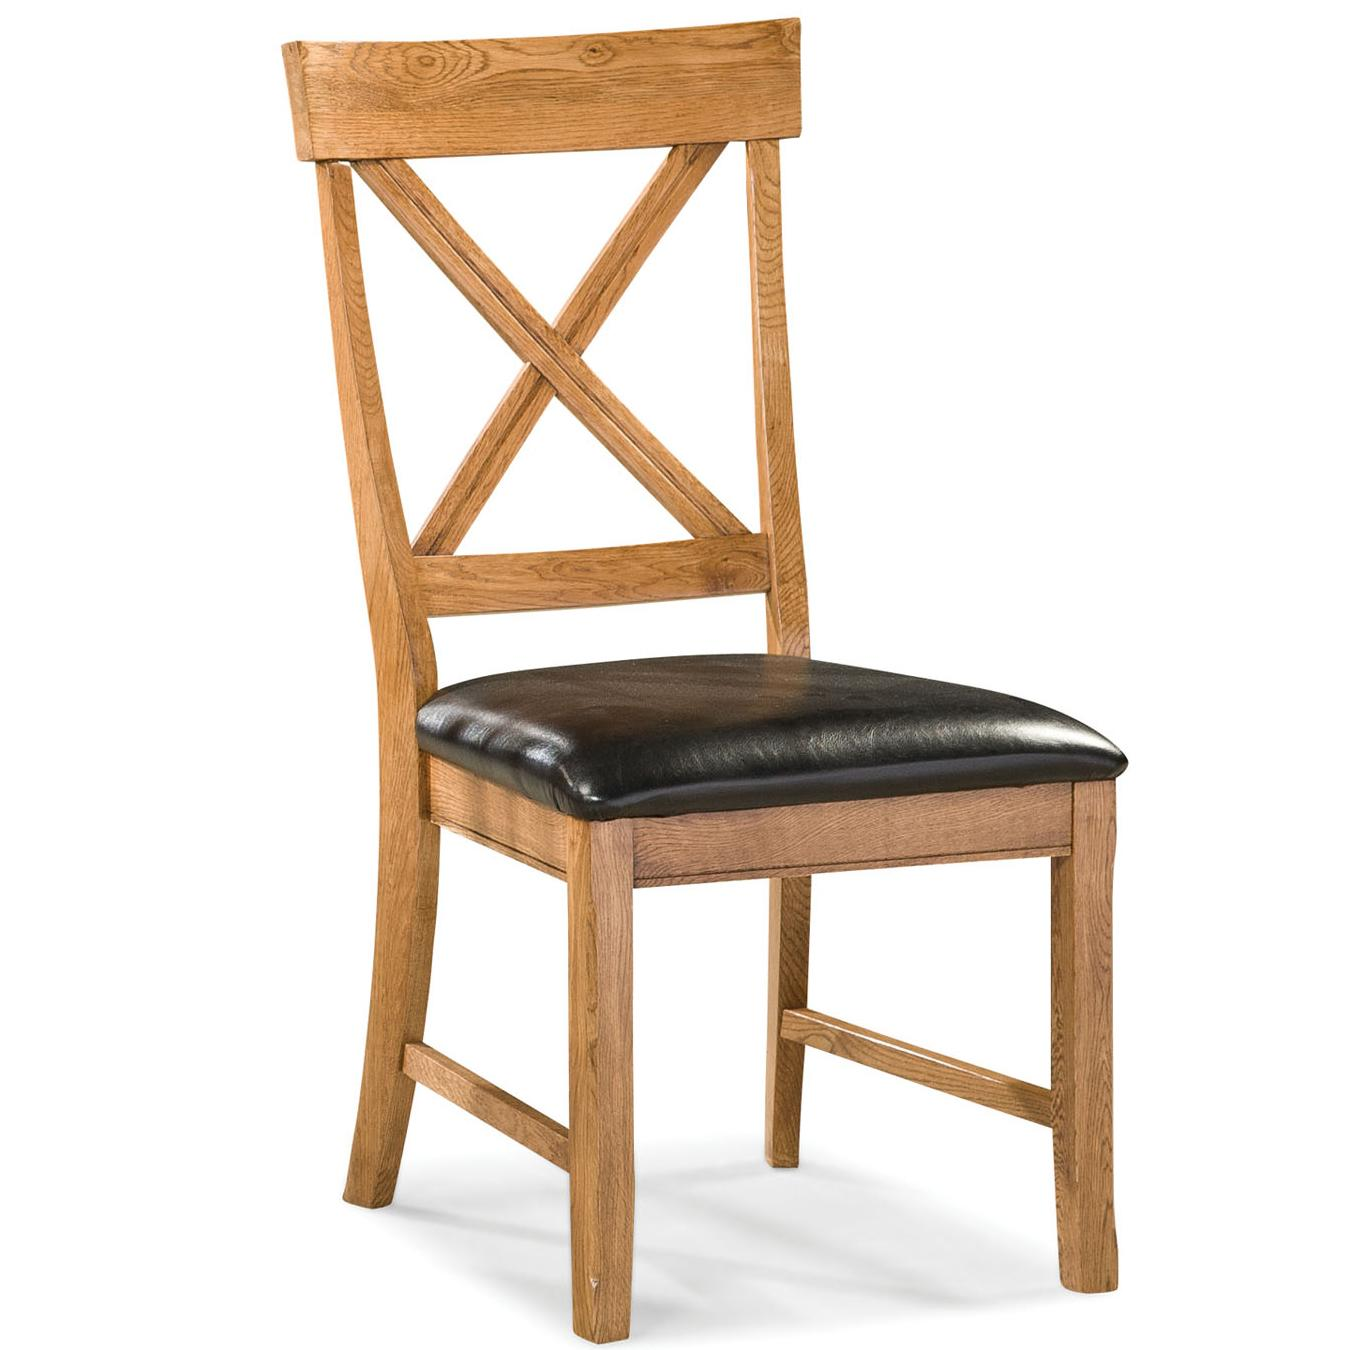 Family Dining Dining Chair with X-Back by Intercon at Dinette Depot